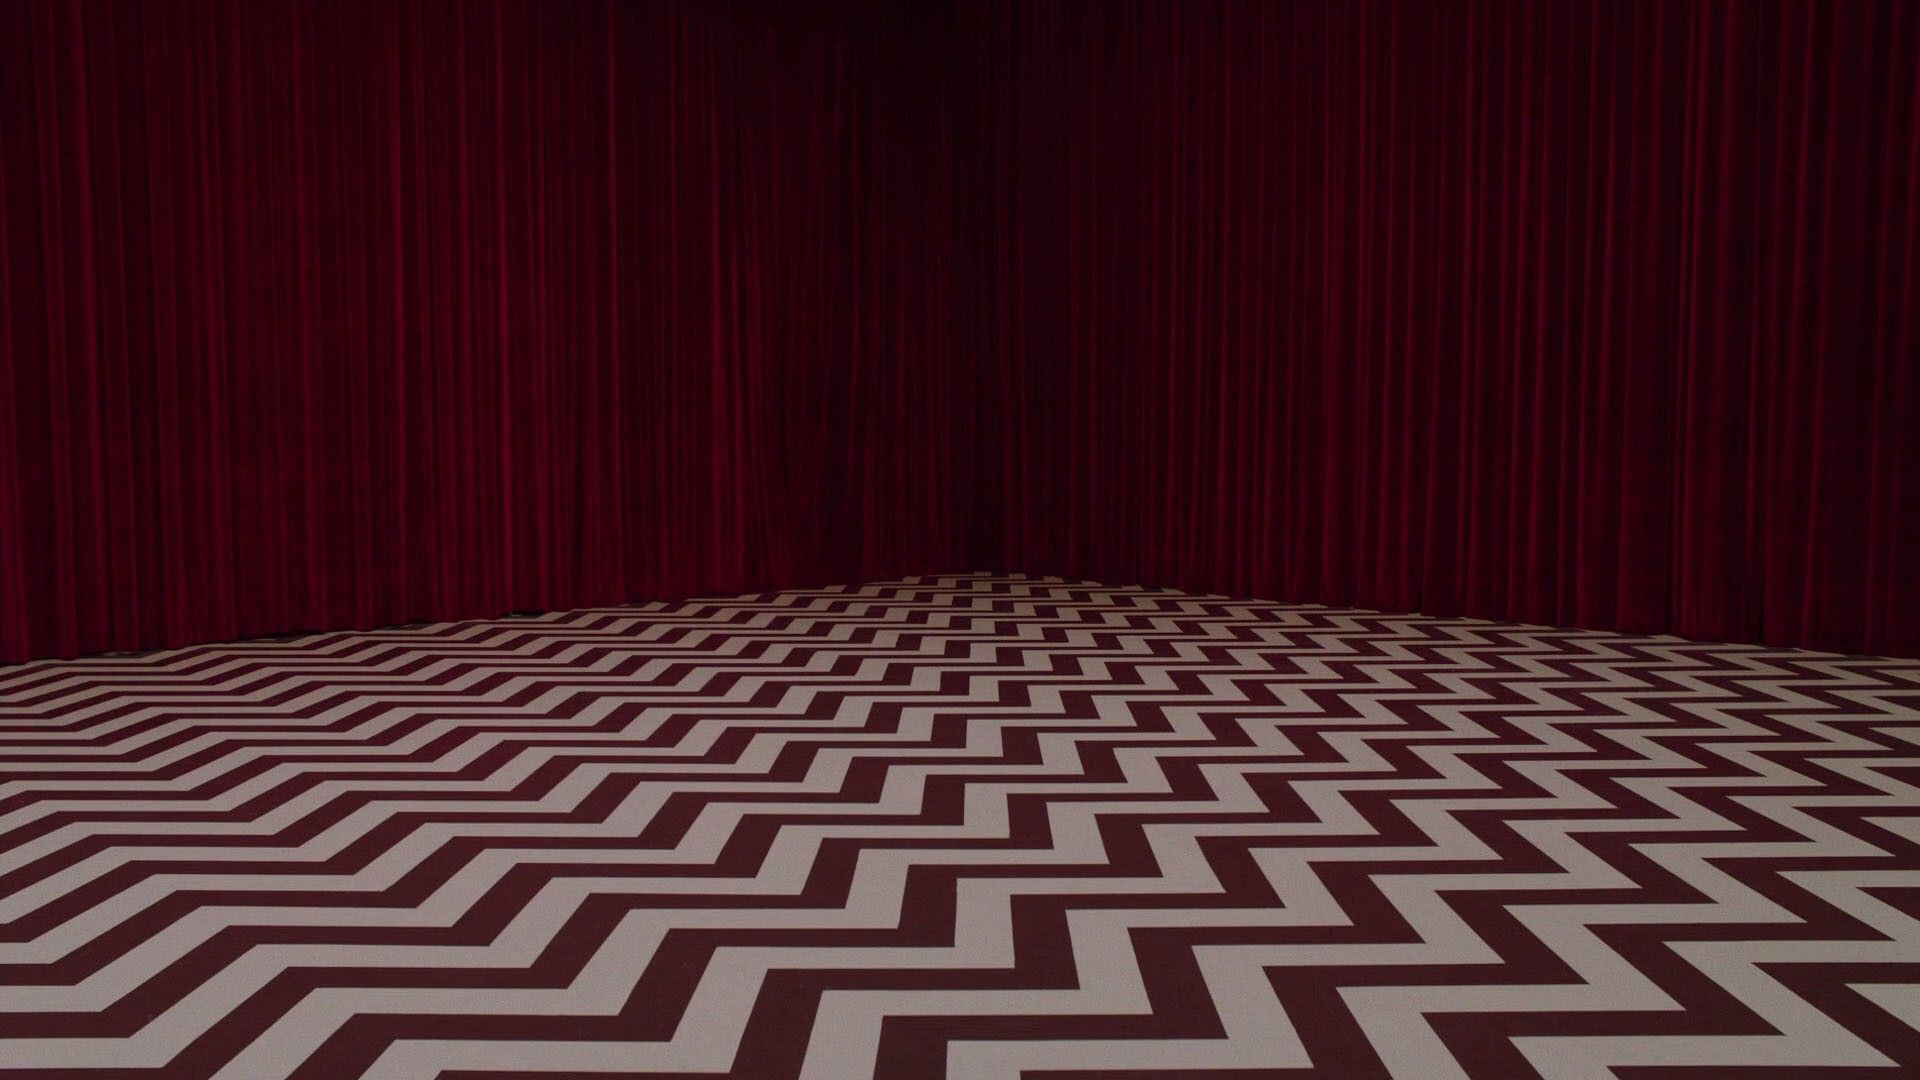 10 Latest Twin Peaks Wallpaper 1920x1080 Full Hd 1920 1080 For Pc Background Twin Peaks Wallpaper Twin Peaks Twin Peaks Season 3